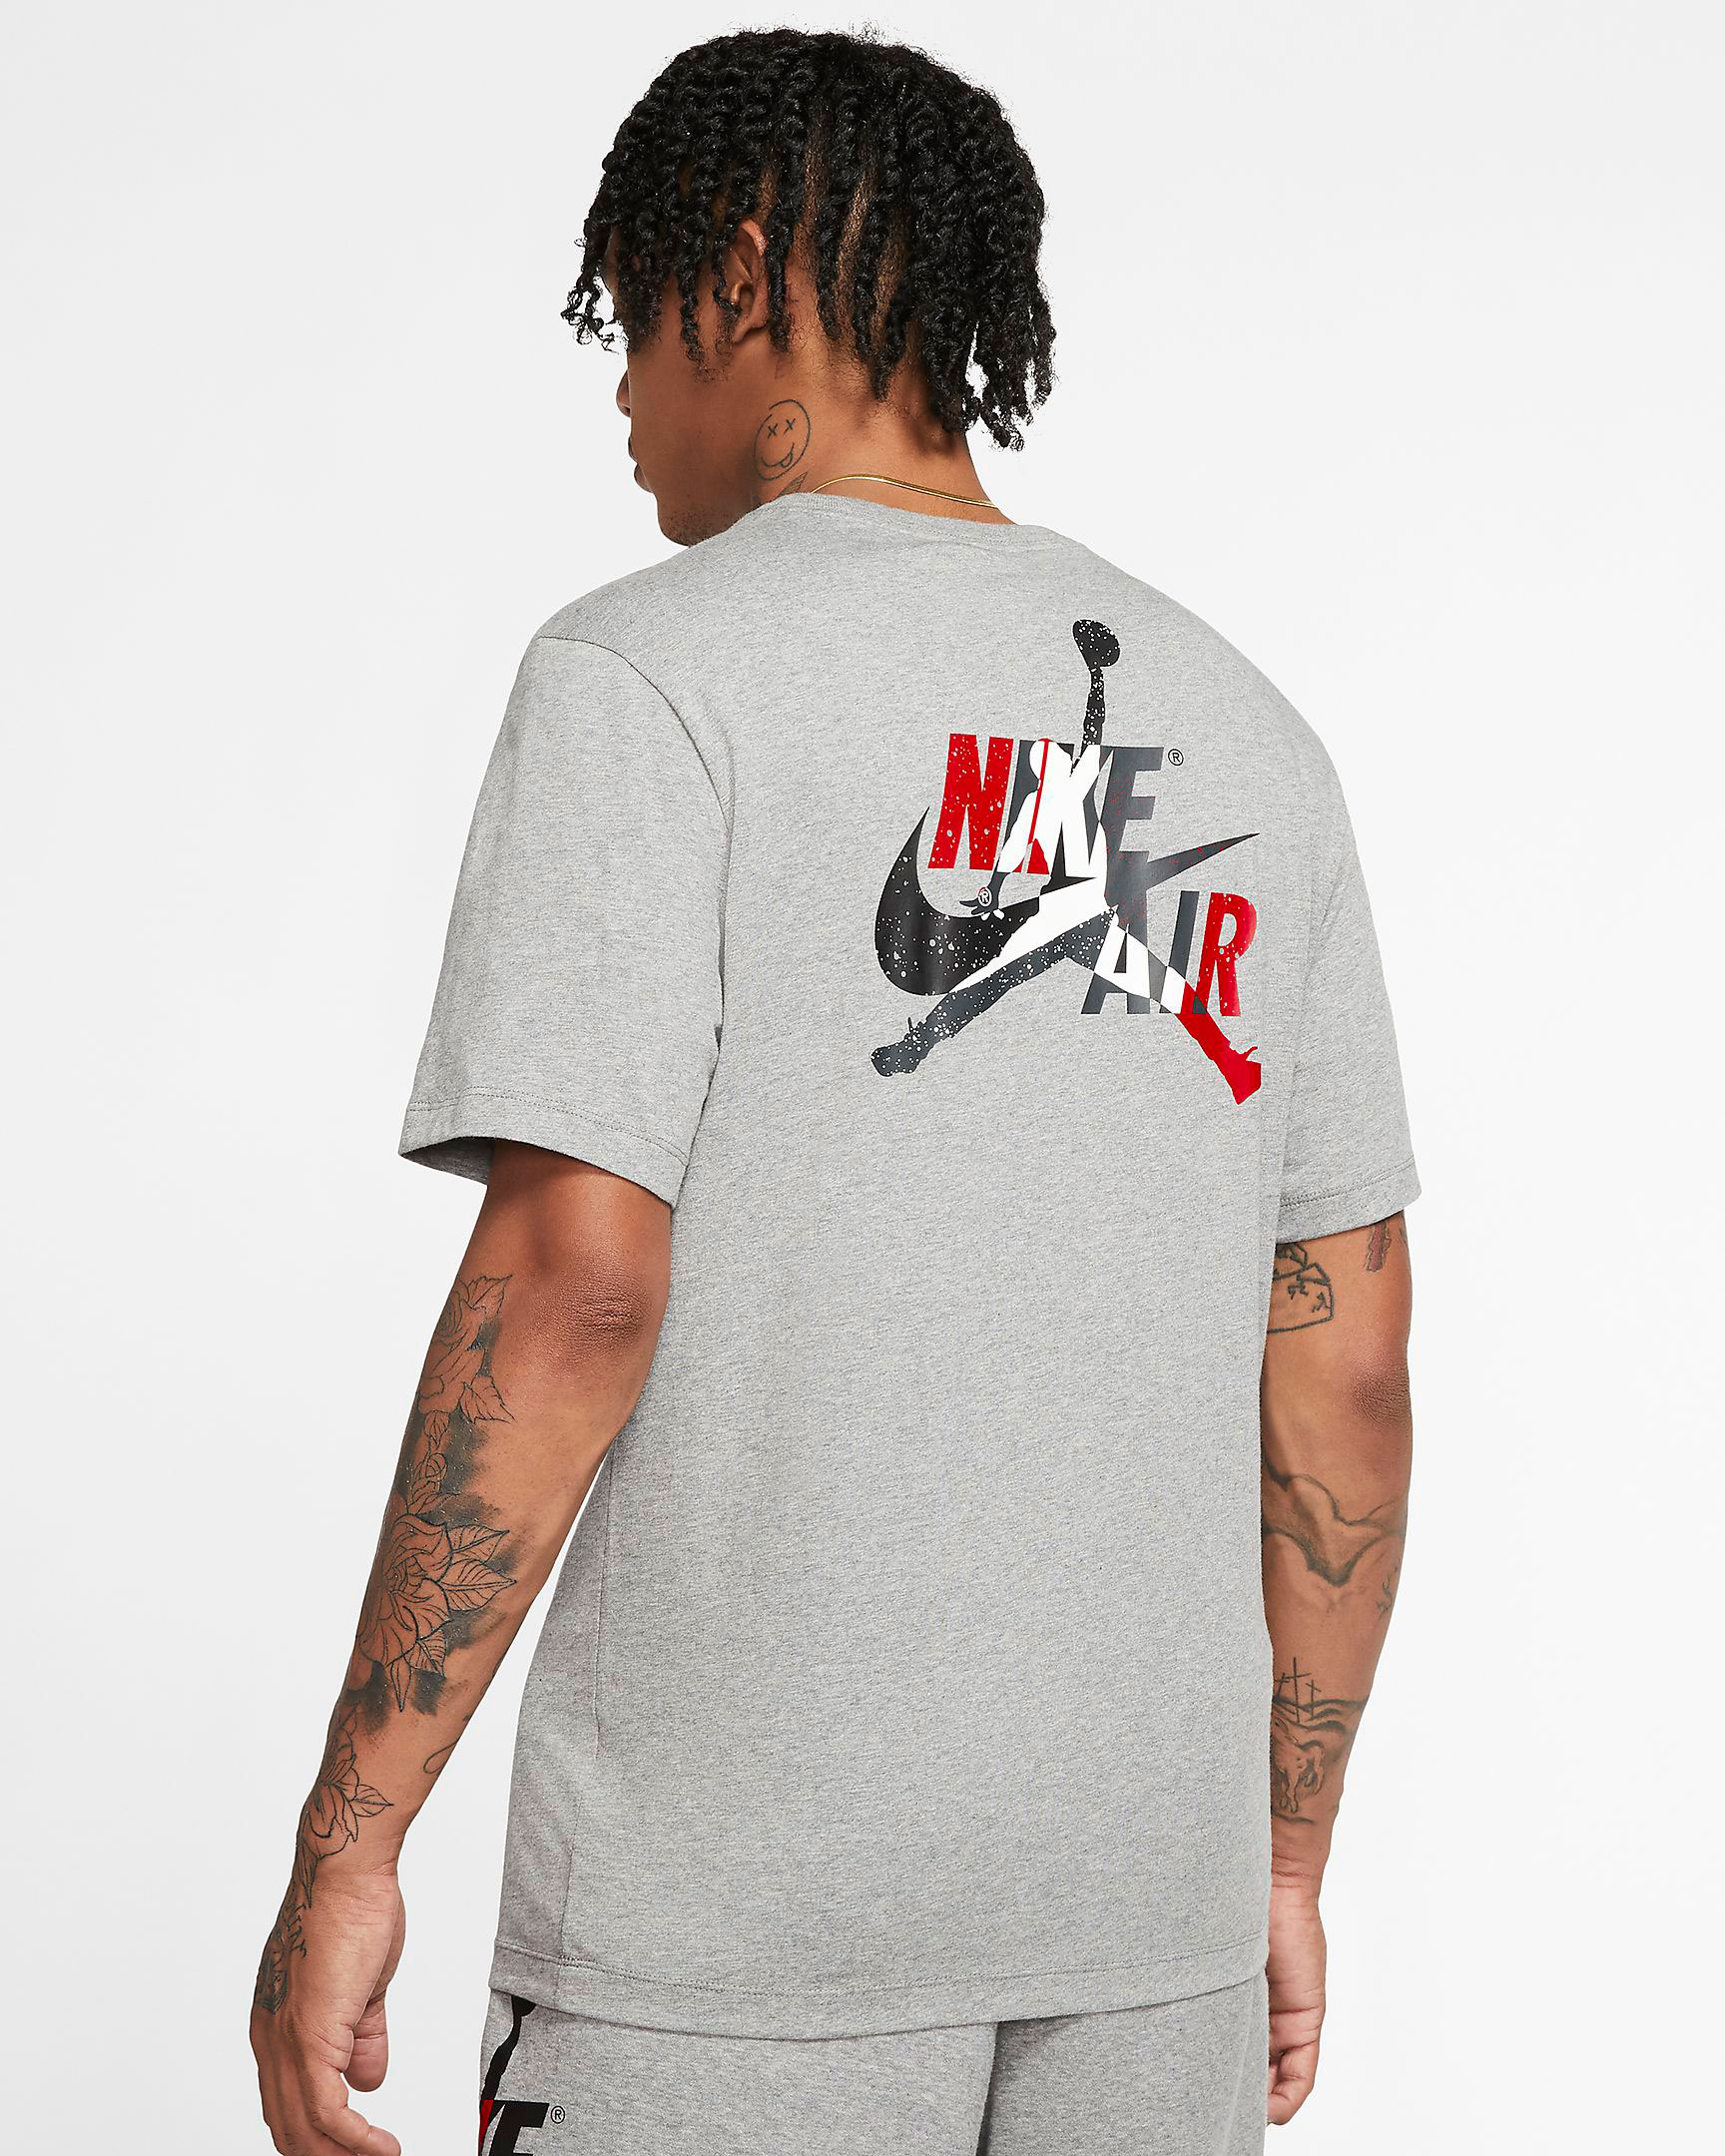 jordan-jumpman-classics-shirt-cement-grey-black-red-2